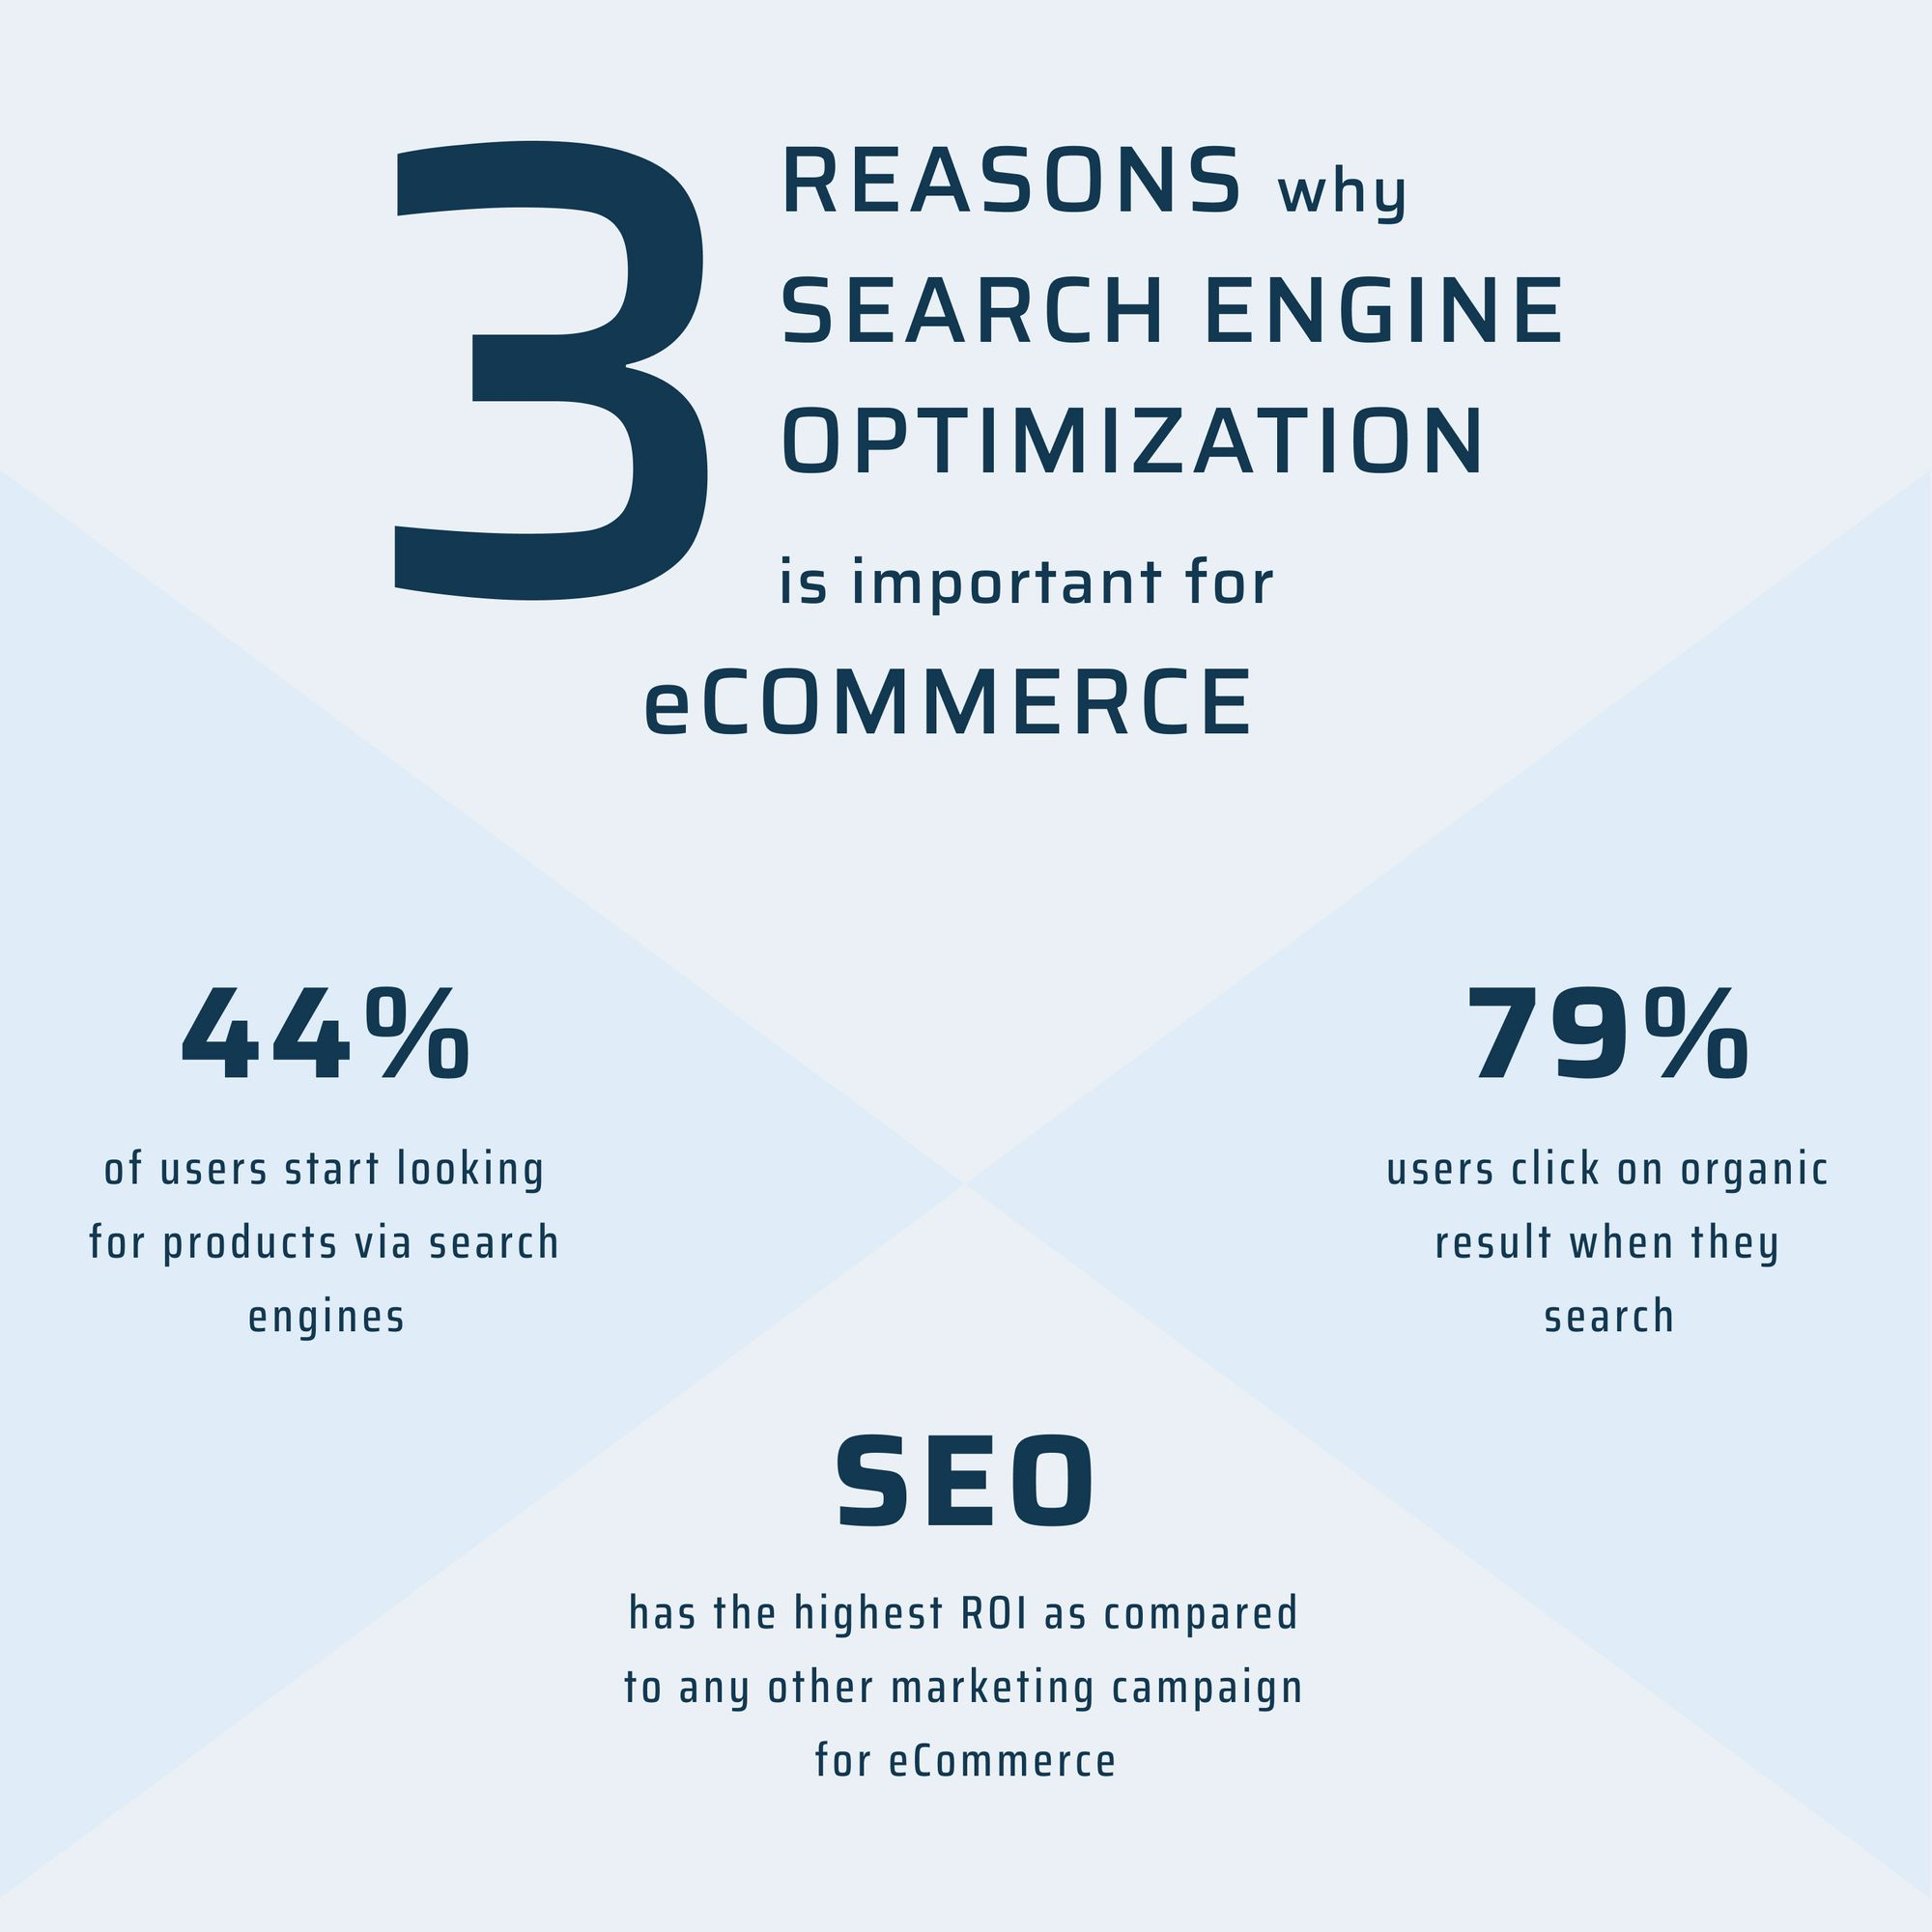 Reasons why SEO is important for eCommerce